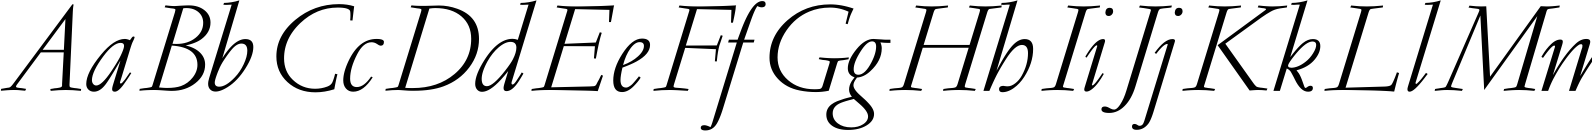 Garamond RR Light Italic